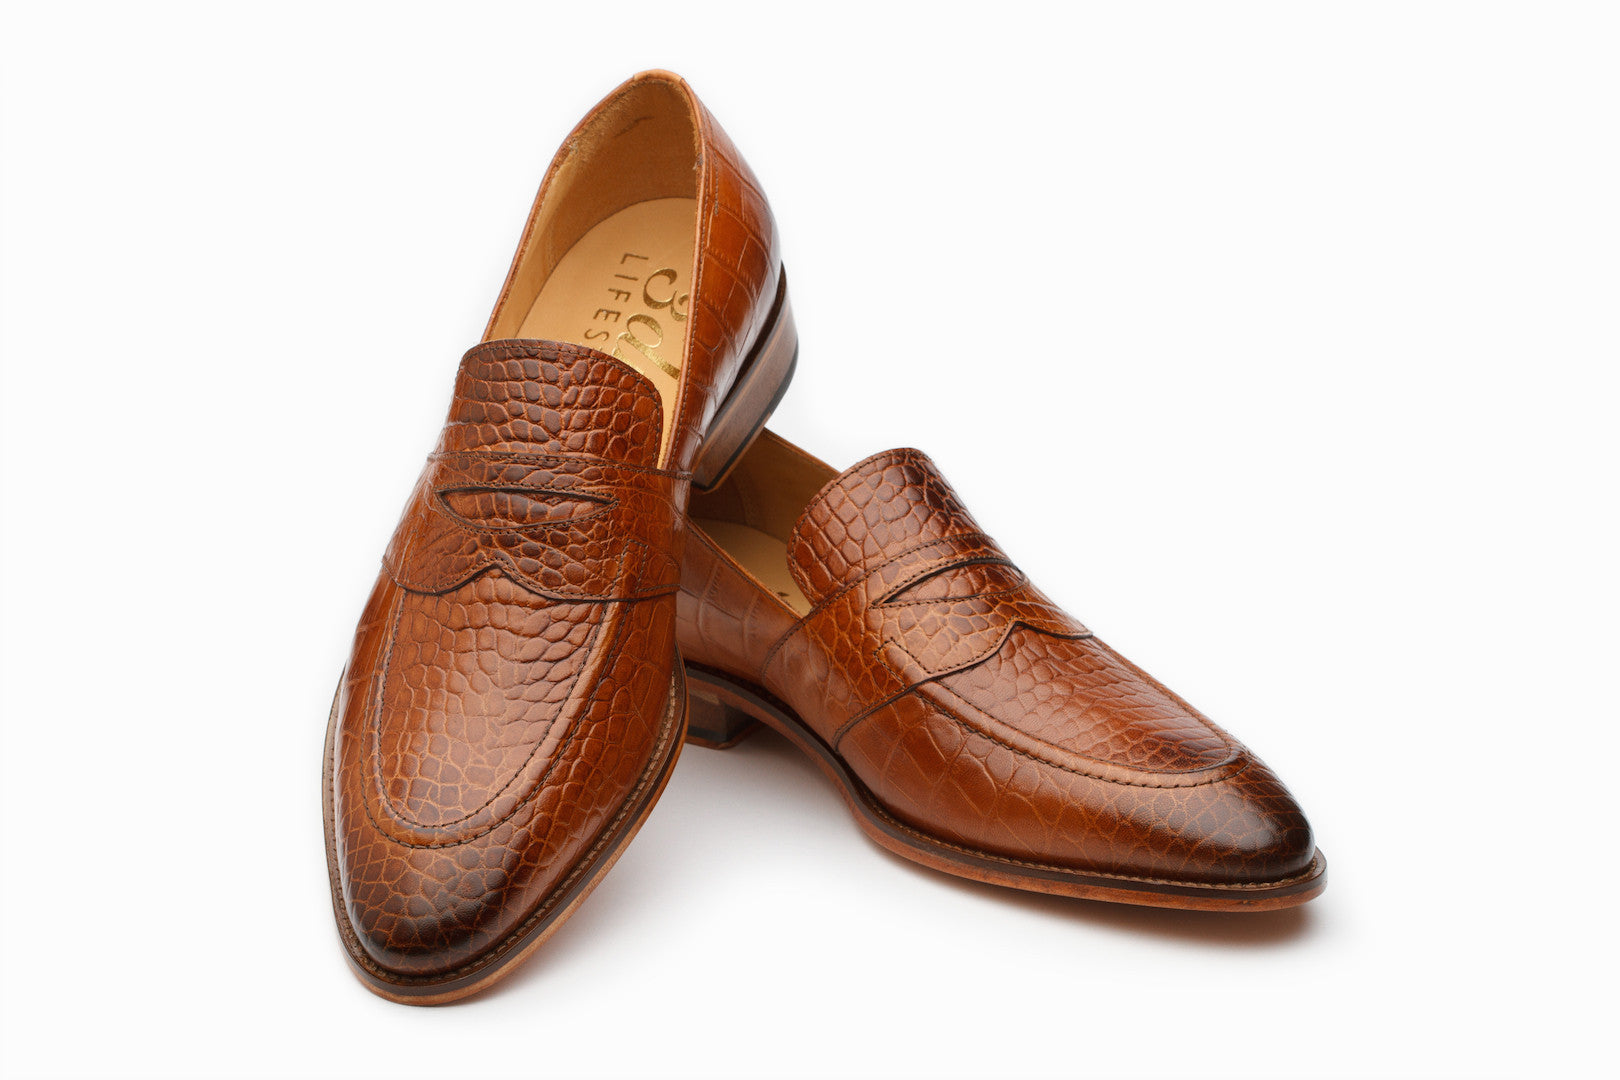 Loafers - Saddle Strap Loafer - Crocodile Tan ( UK 7,8 & 11 Only )